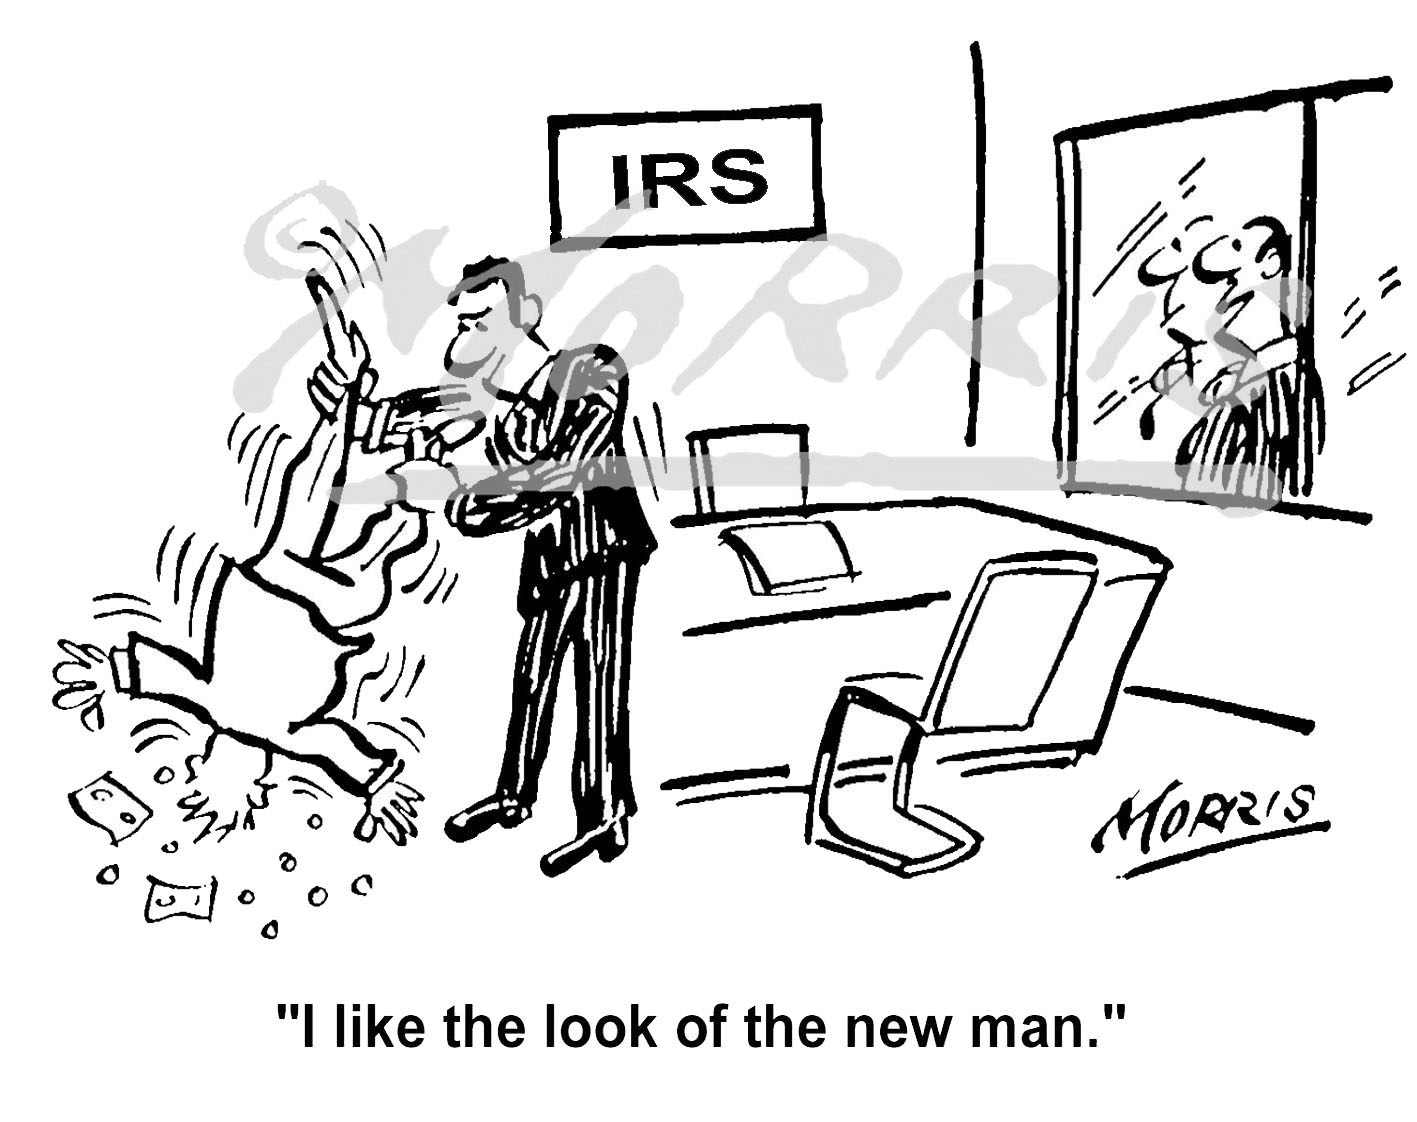 Tax office employee IRS comic cartoon Ref: 1652bwus